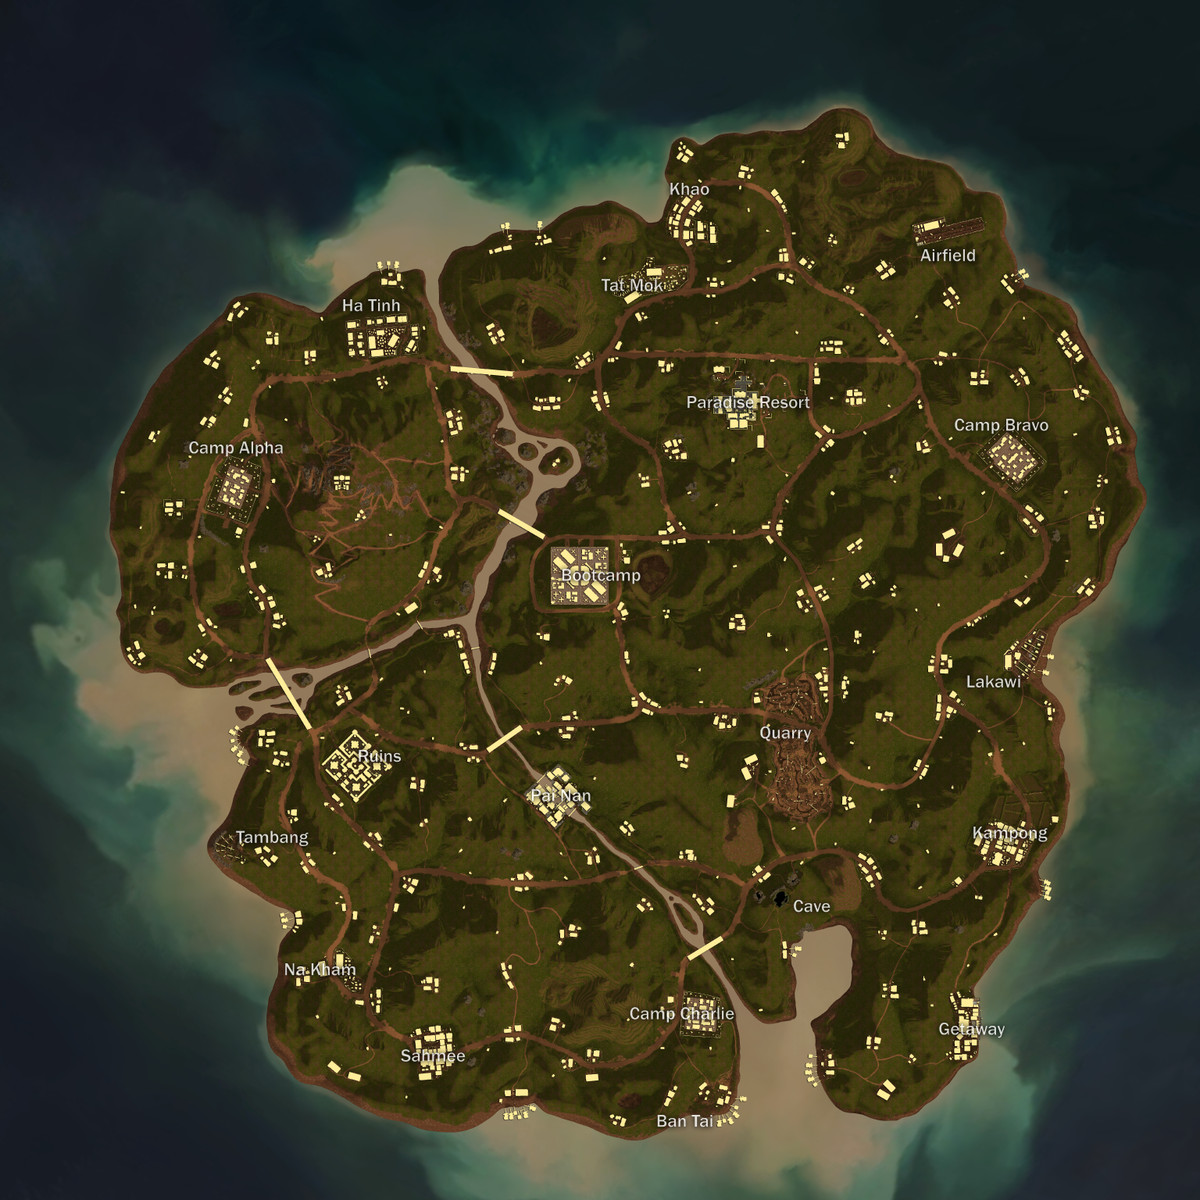 An overhead view of the map for PUBG's Sanhok rework